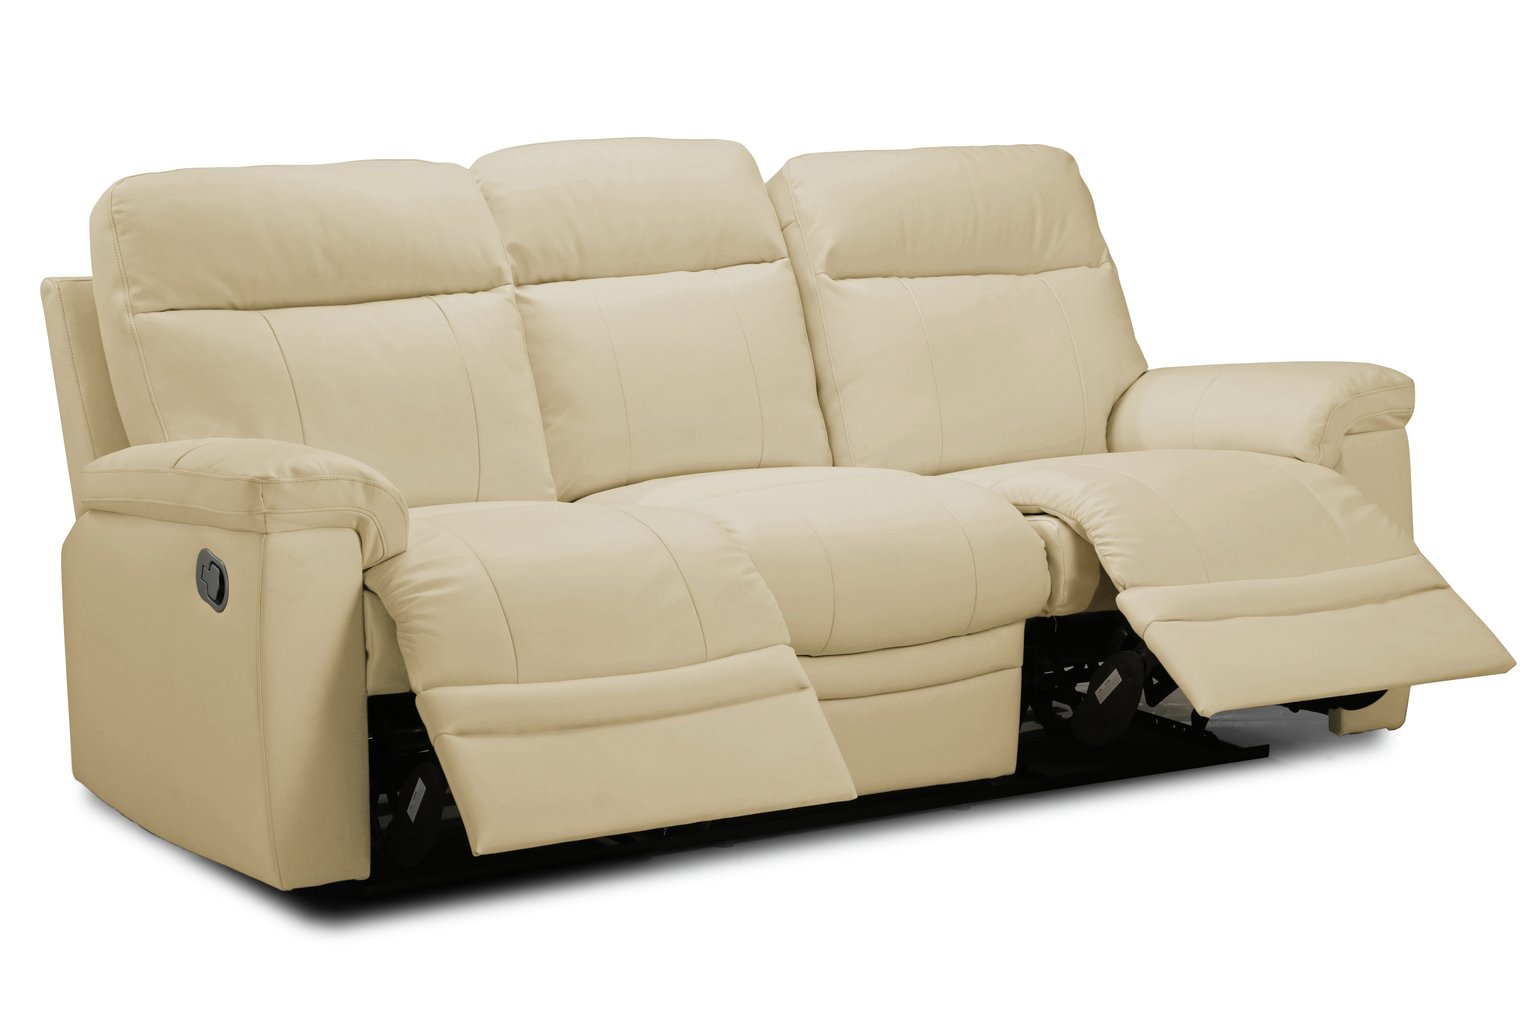 Argos Home Paolo 3 Seater Manual Recliner Sofa - Ivory